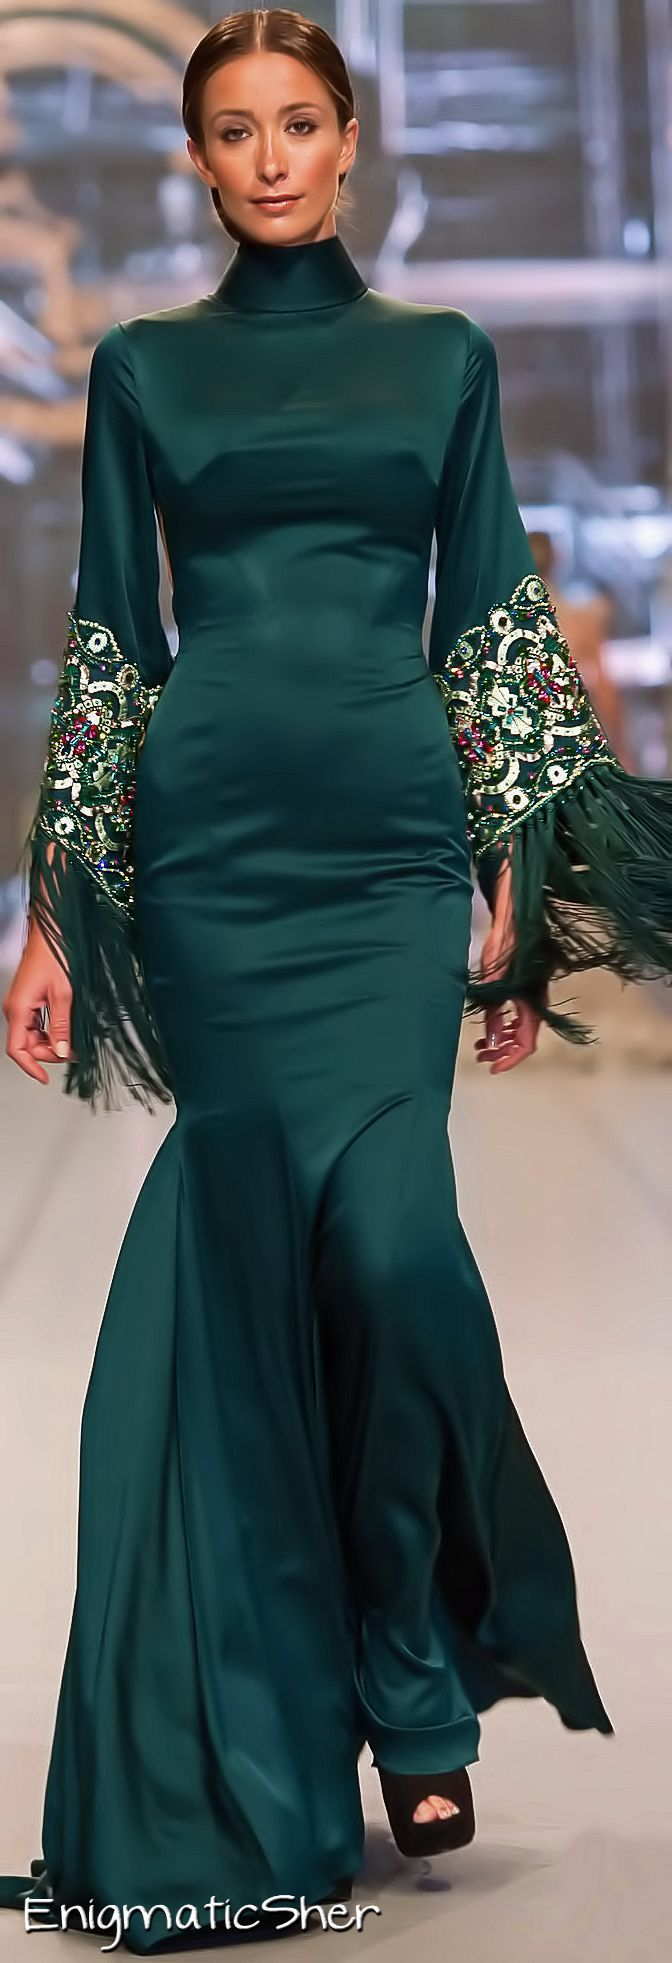 Ezra Couture FW-13/14: Spanish inspired green gown with embroidered sleeves & fringes.